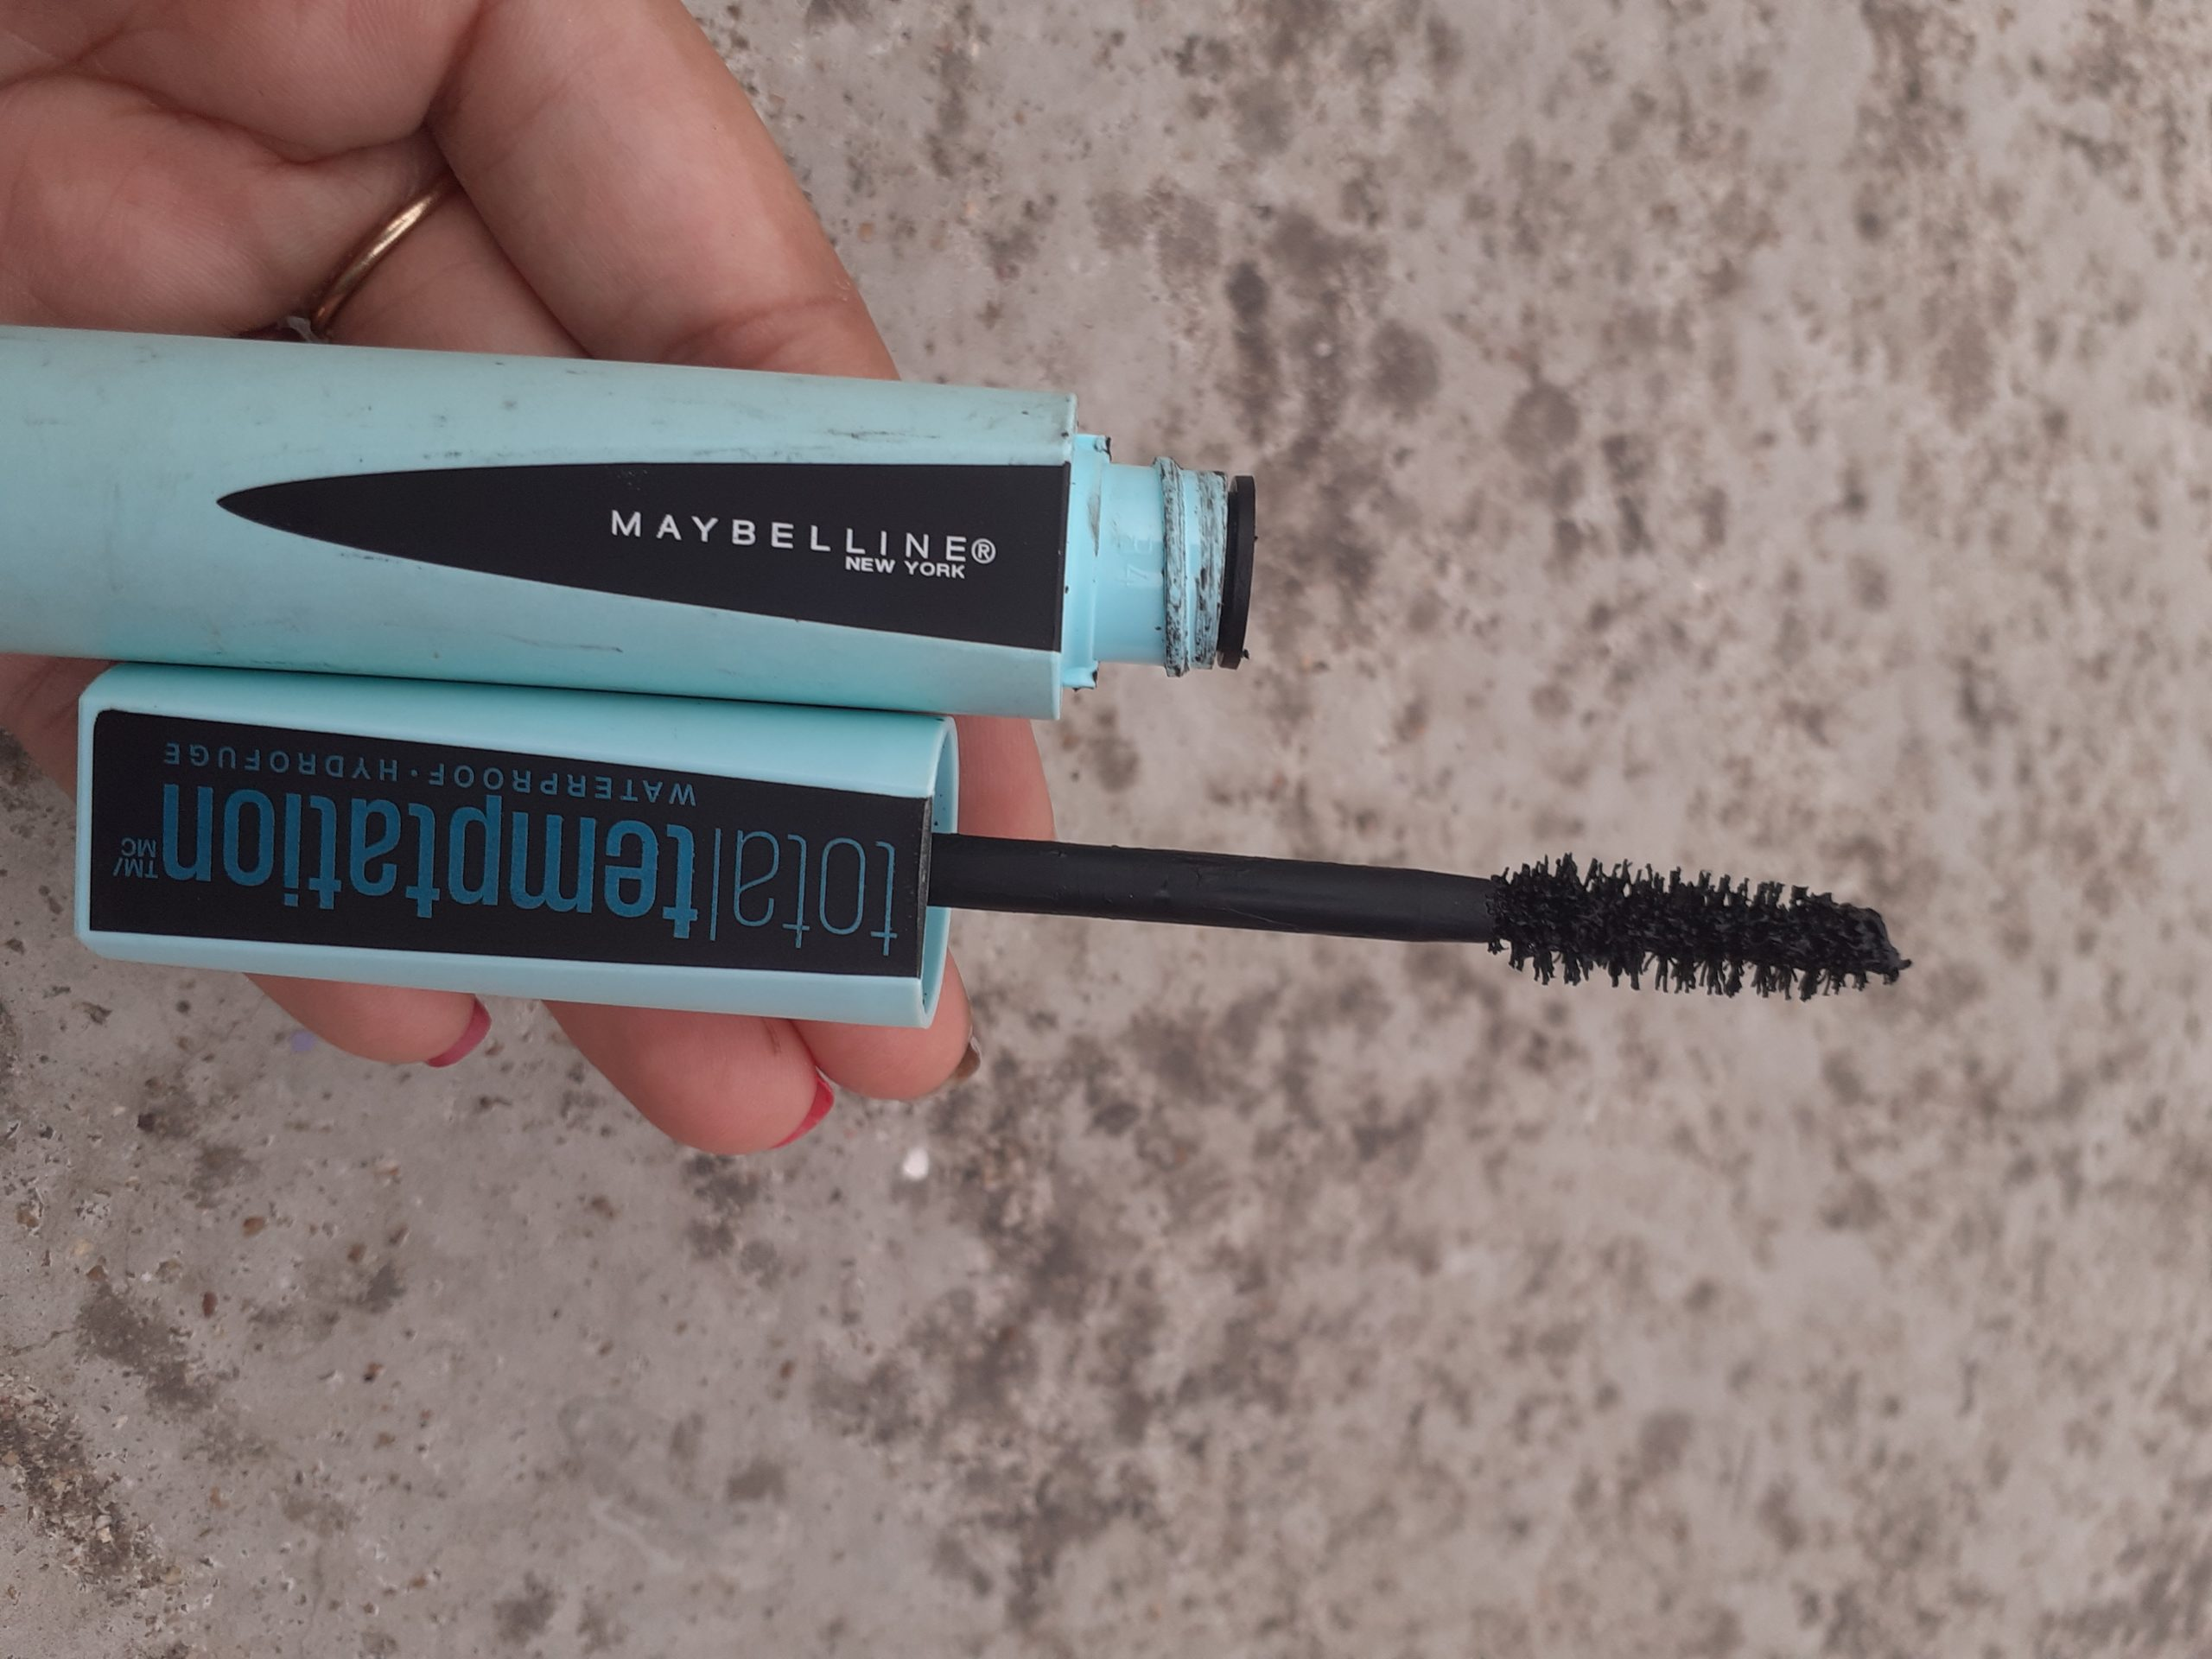 2020 Updated] Maybelline Total Temptation Mascara Review